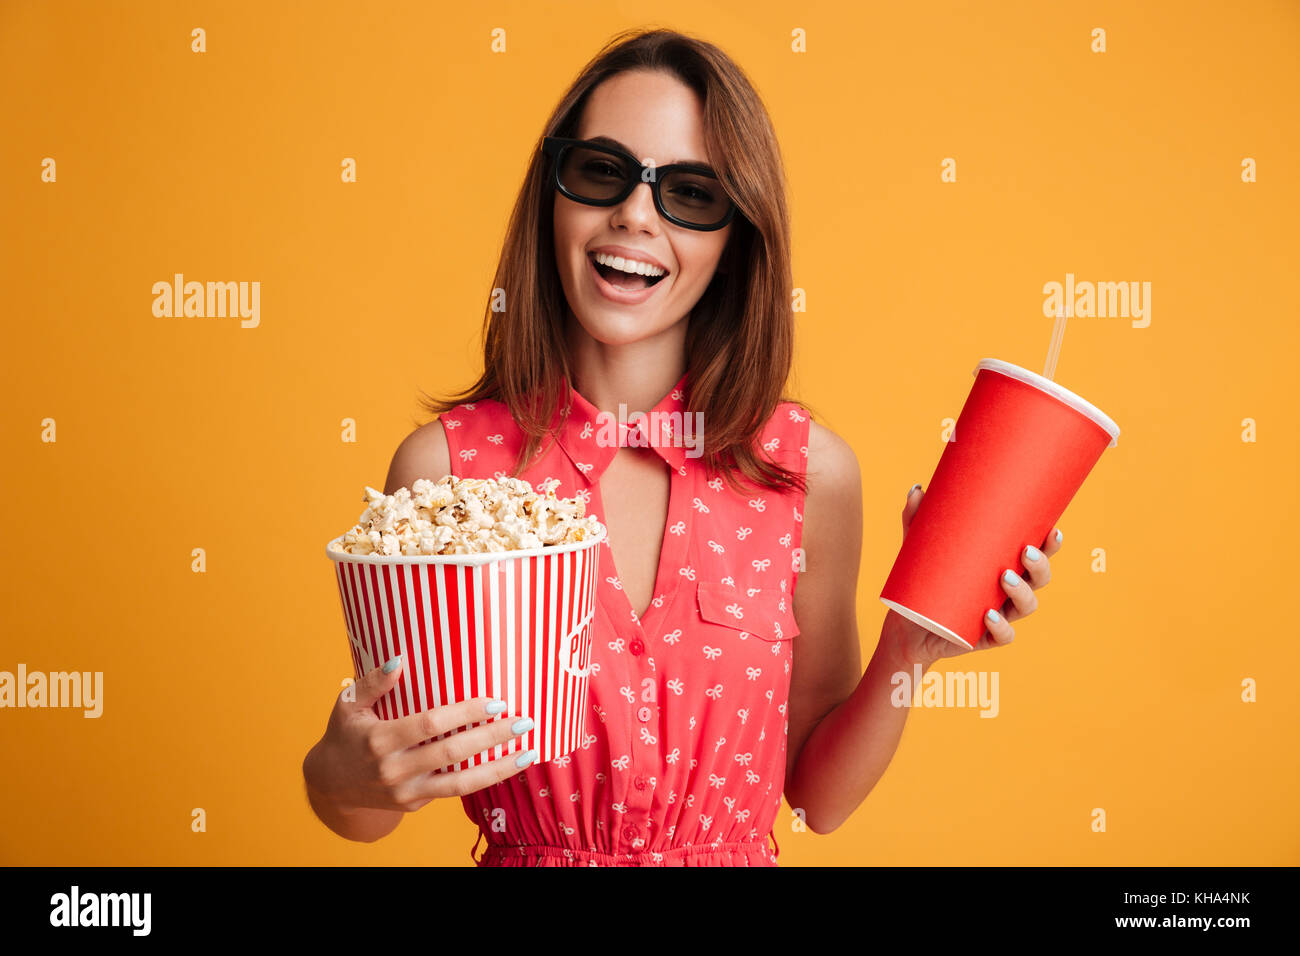 Happy brunette woman in dress and eyeglasses preparing to watch the film while holding popcorn and soda over yellow background Stock Photo